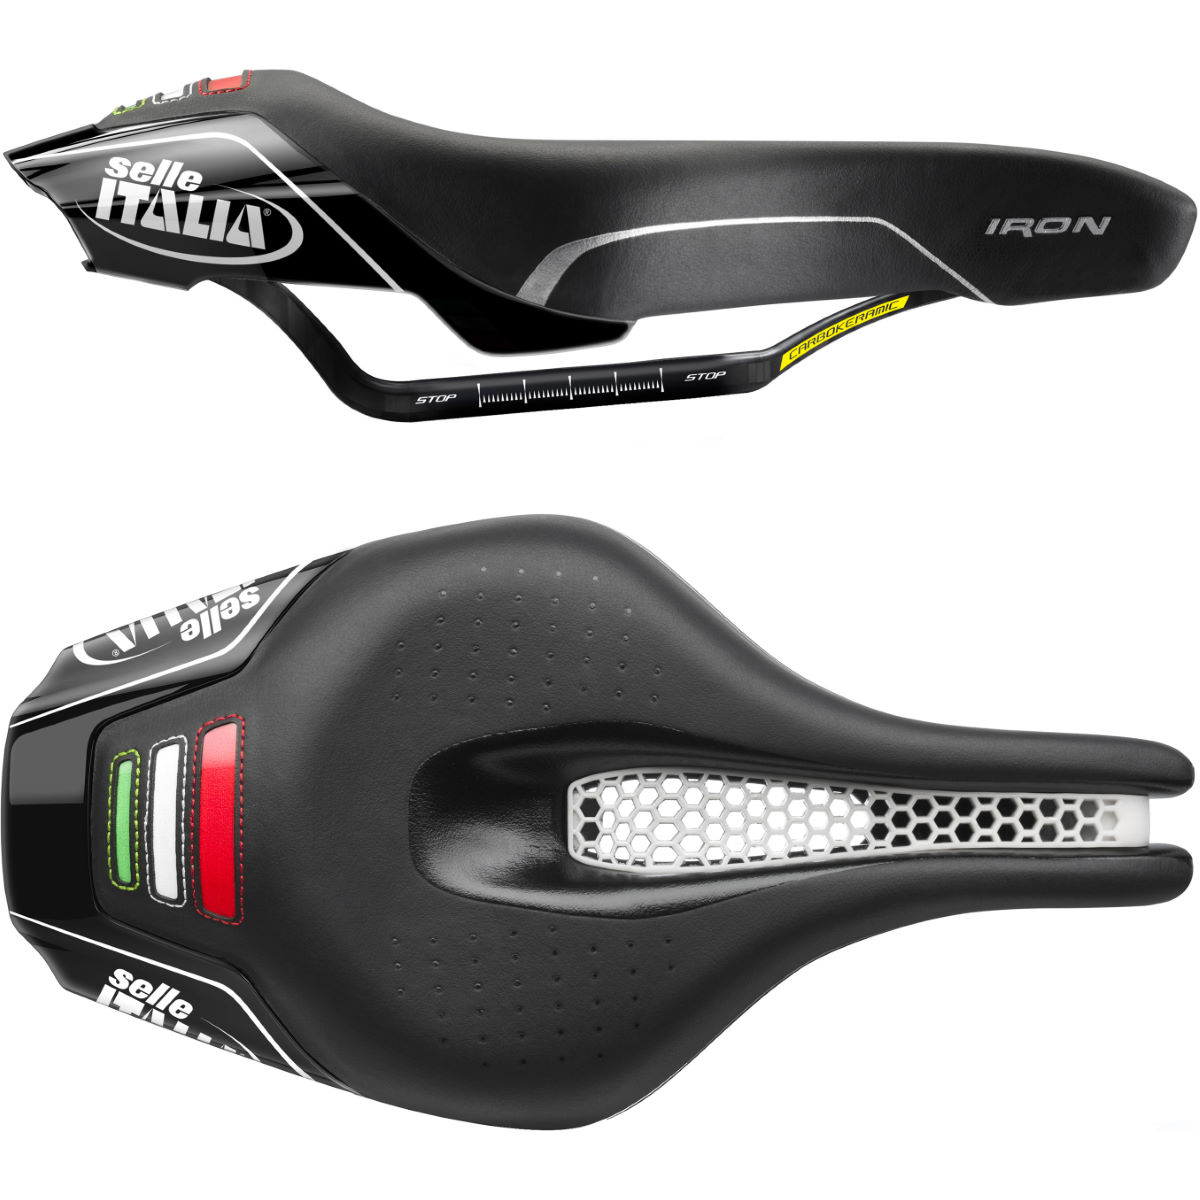 Selle Selle Italia Iron Kit Carbonio Flow - L123 BLACK Selles